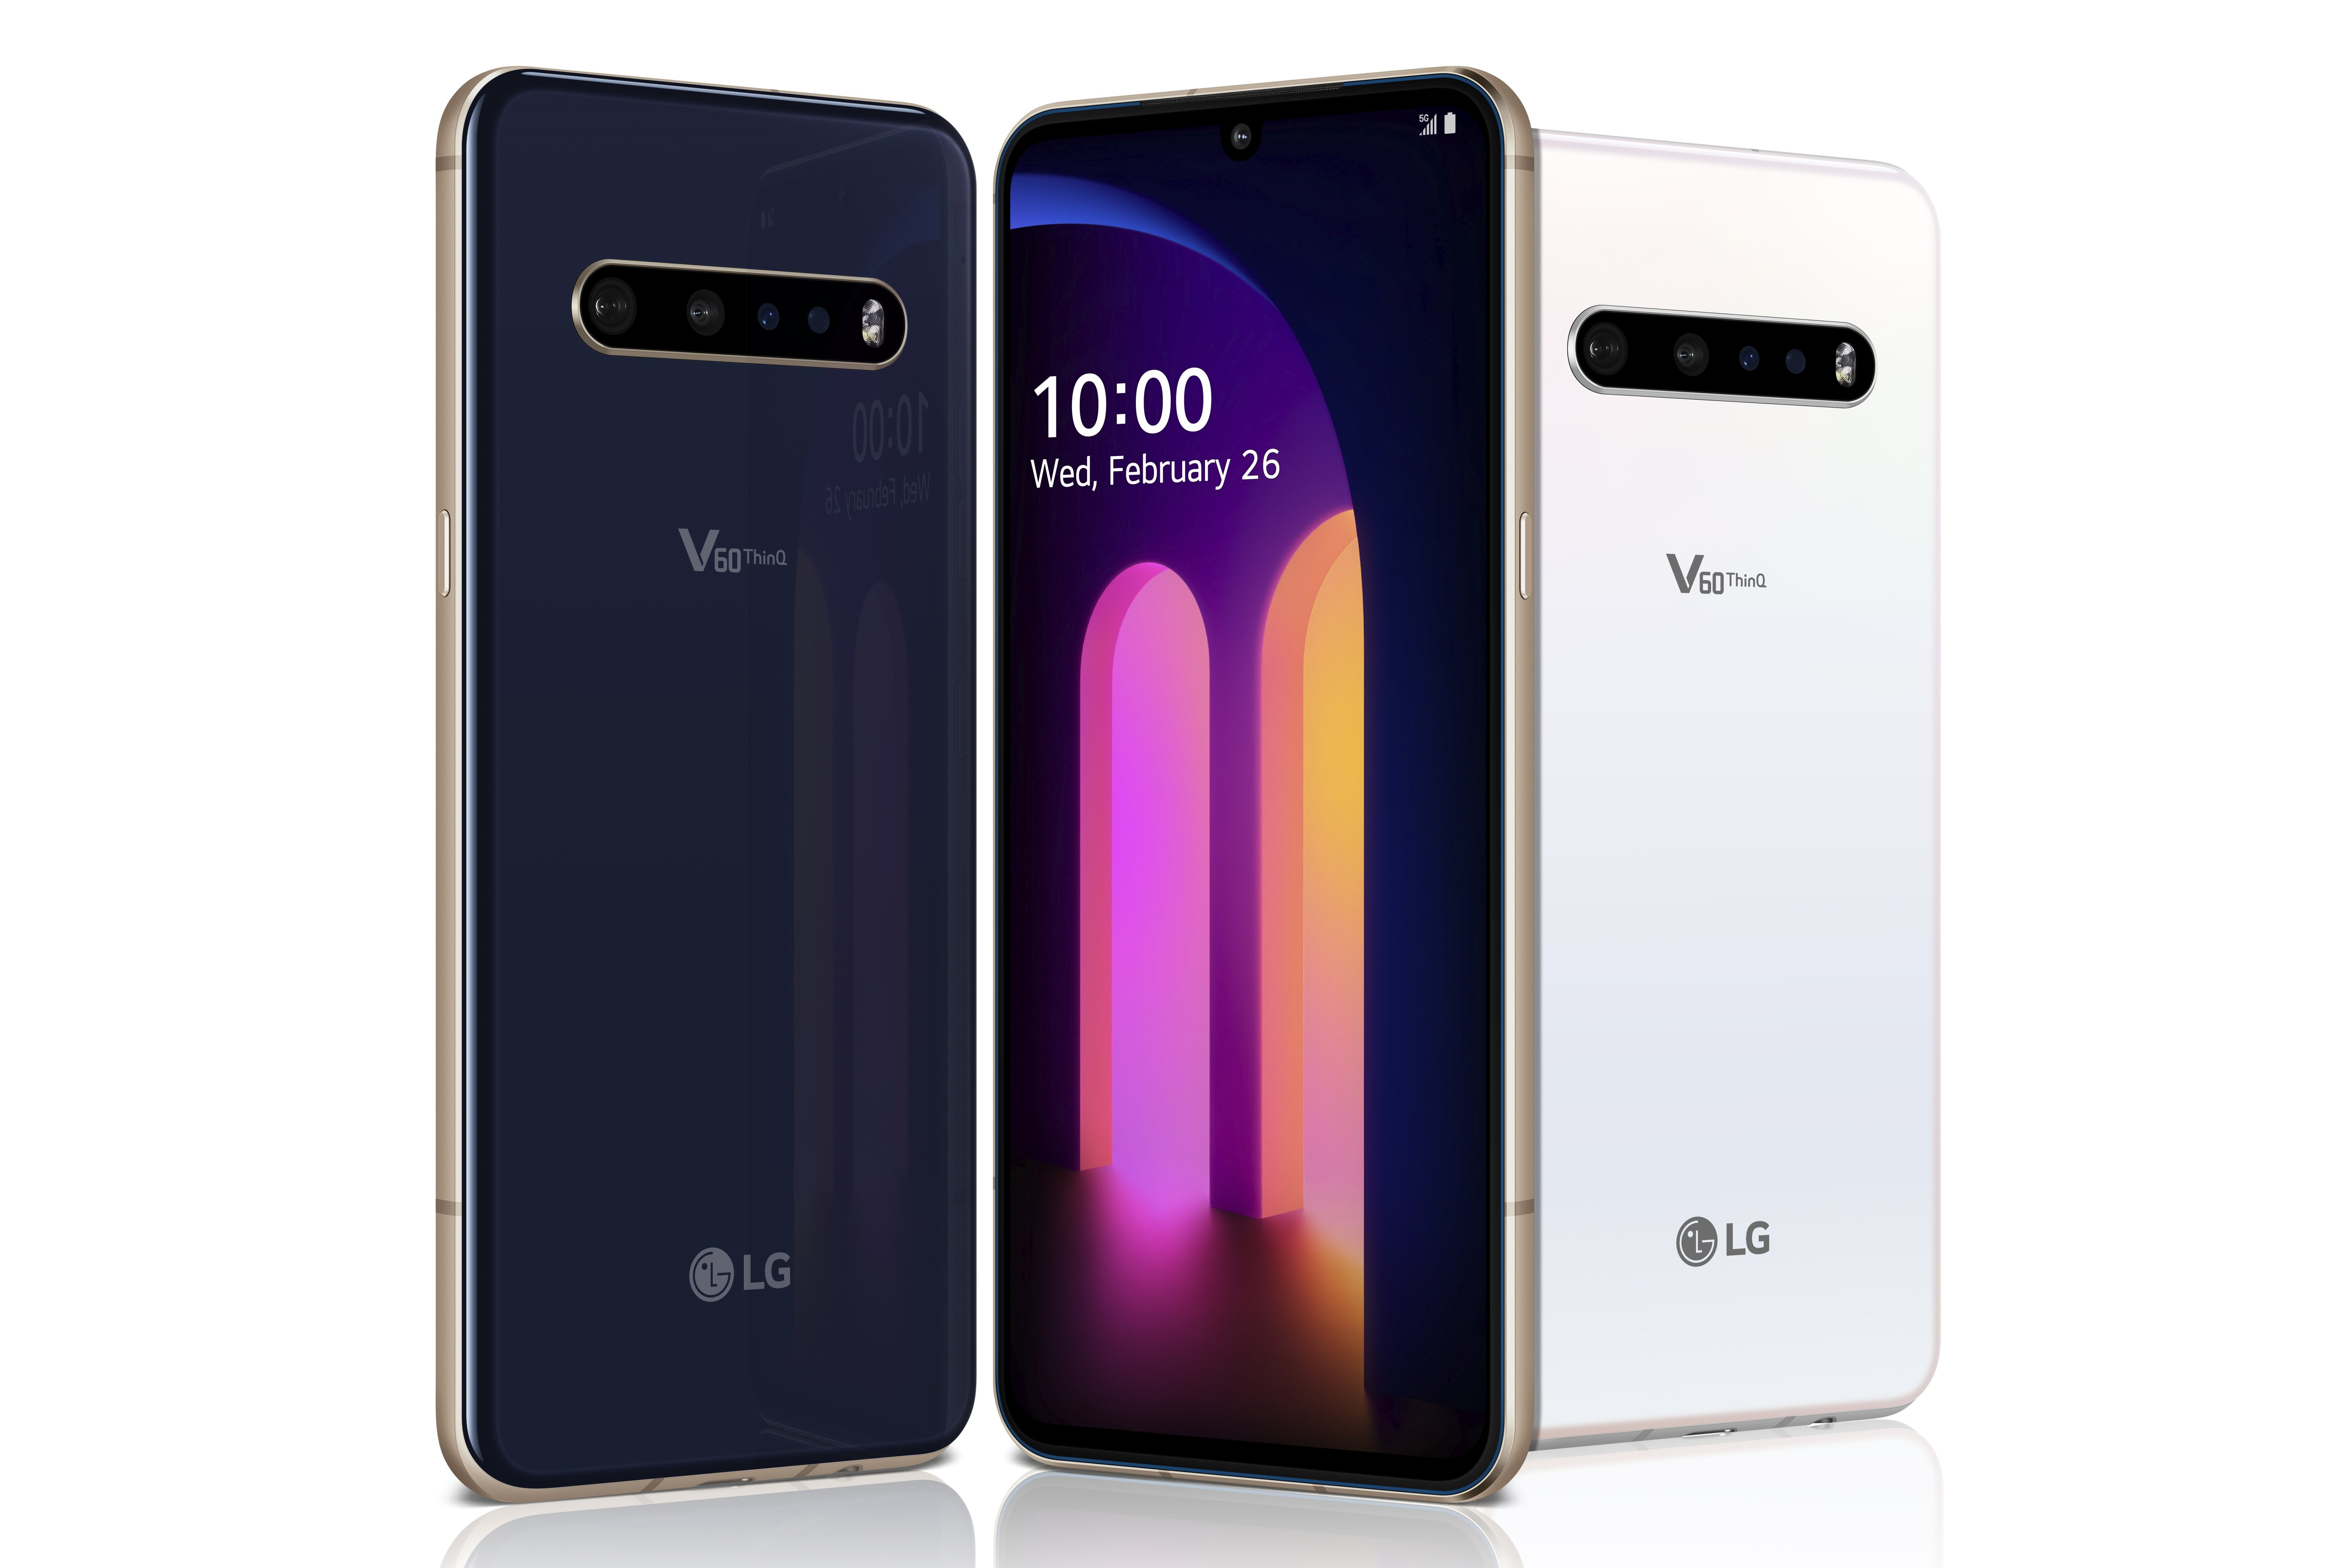 Android 11 makes its debut on the LG V60 ThinQ in Europe - Notebookcheck.net